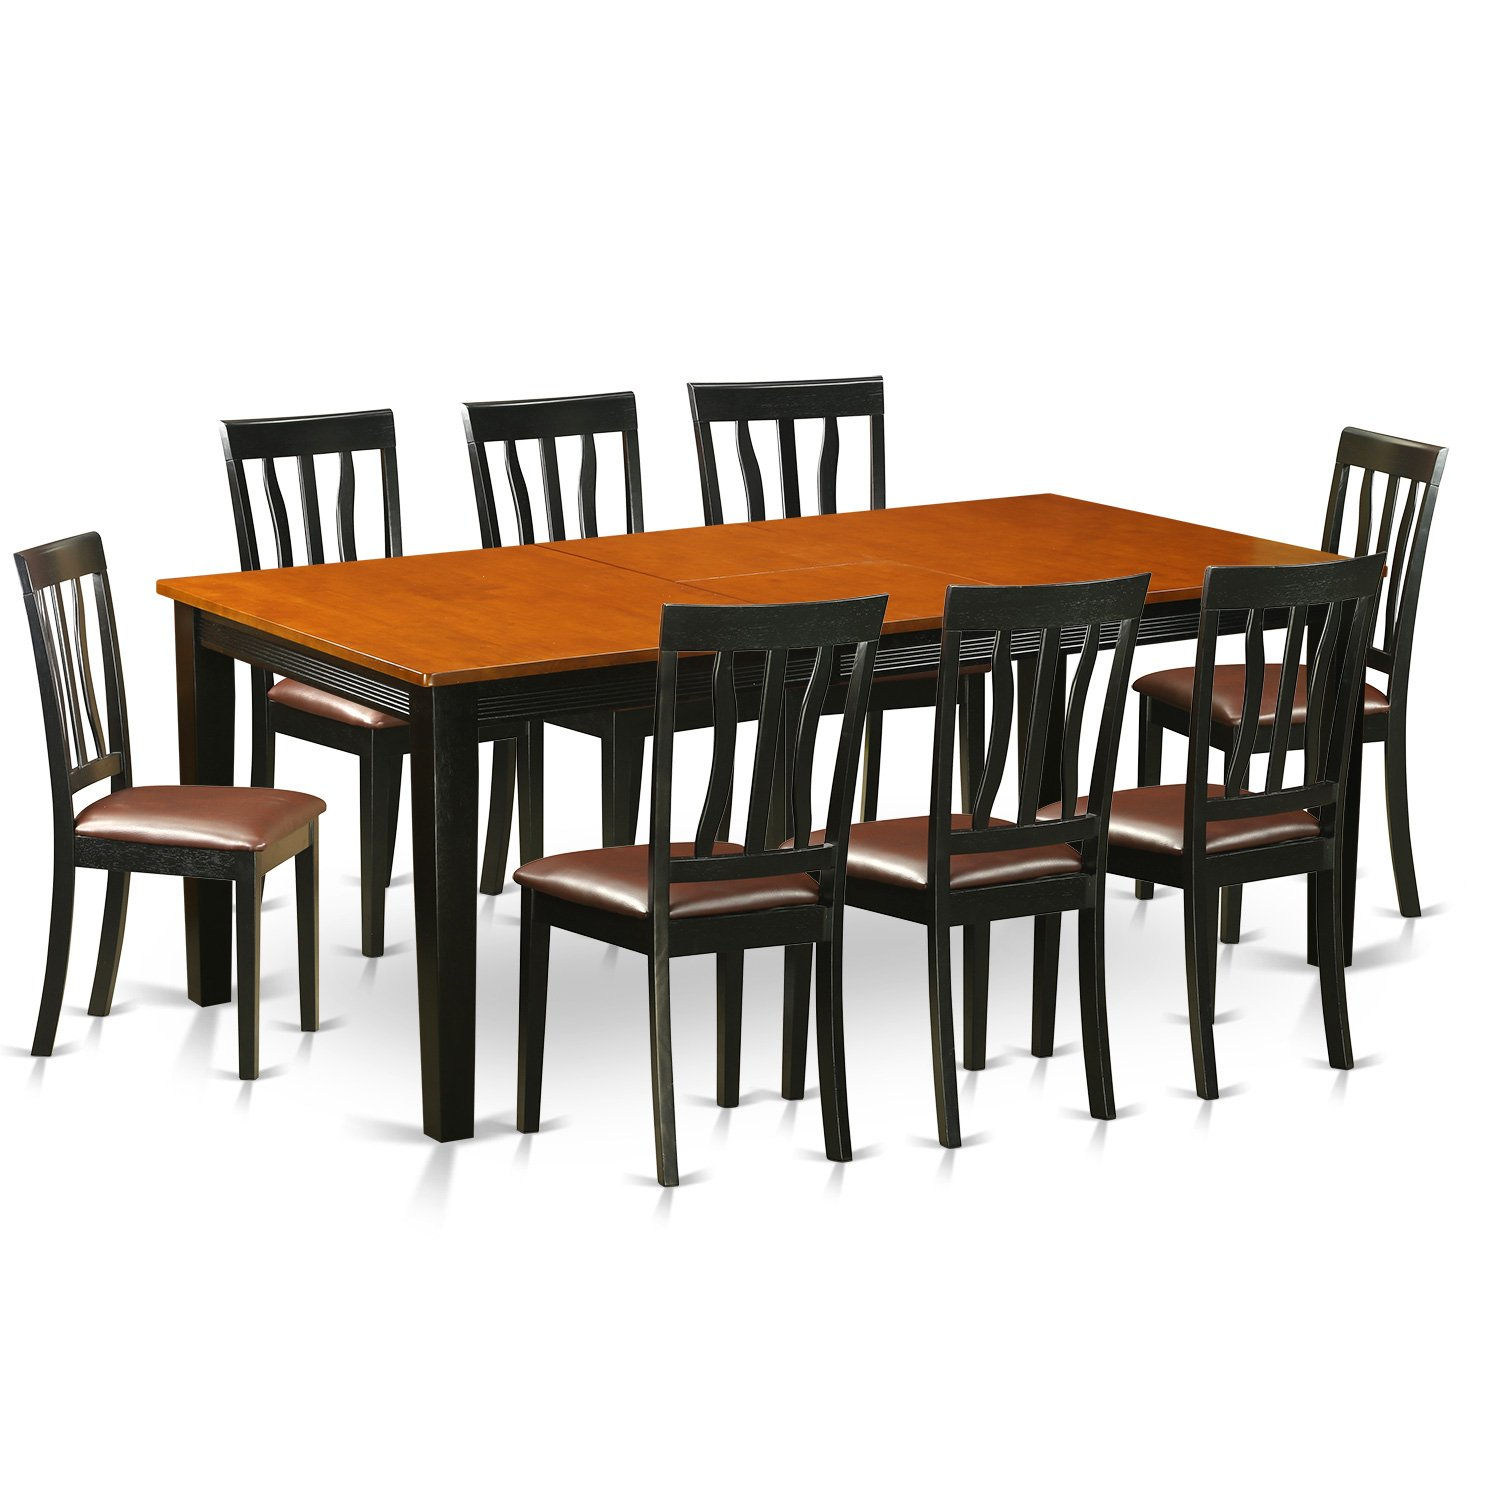 9 Piece Solid Wood Dining Set With Table And 8 Chairs: East West Furniture QUAN9-BCH-LC 9 Piece Dining Table With